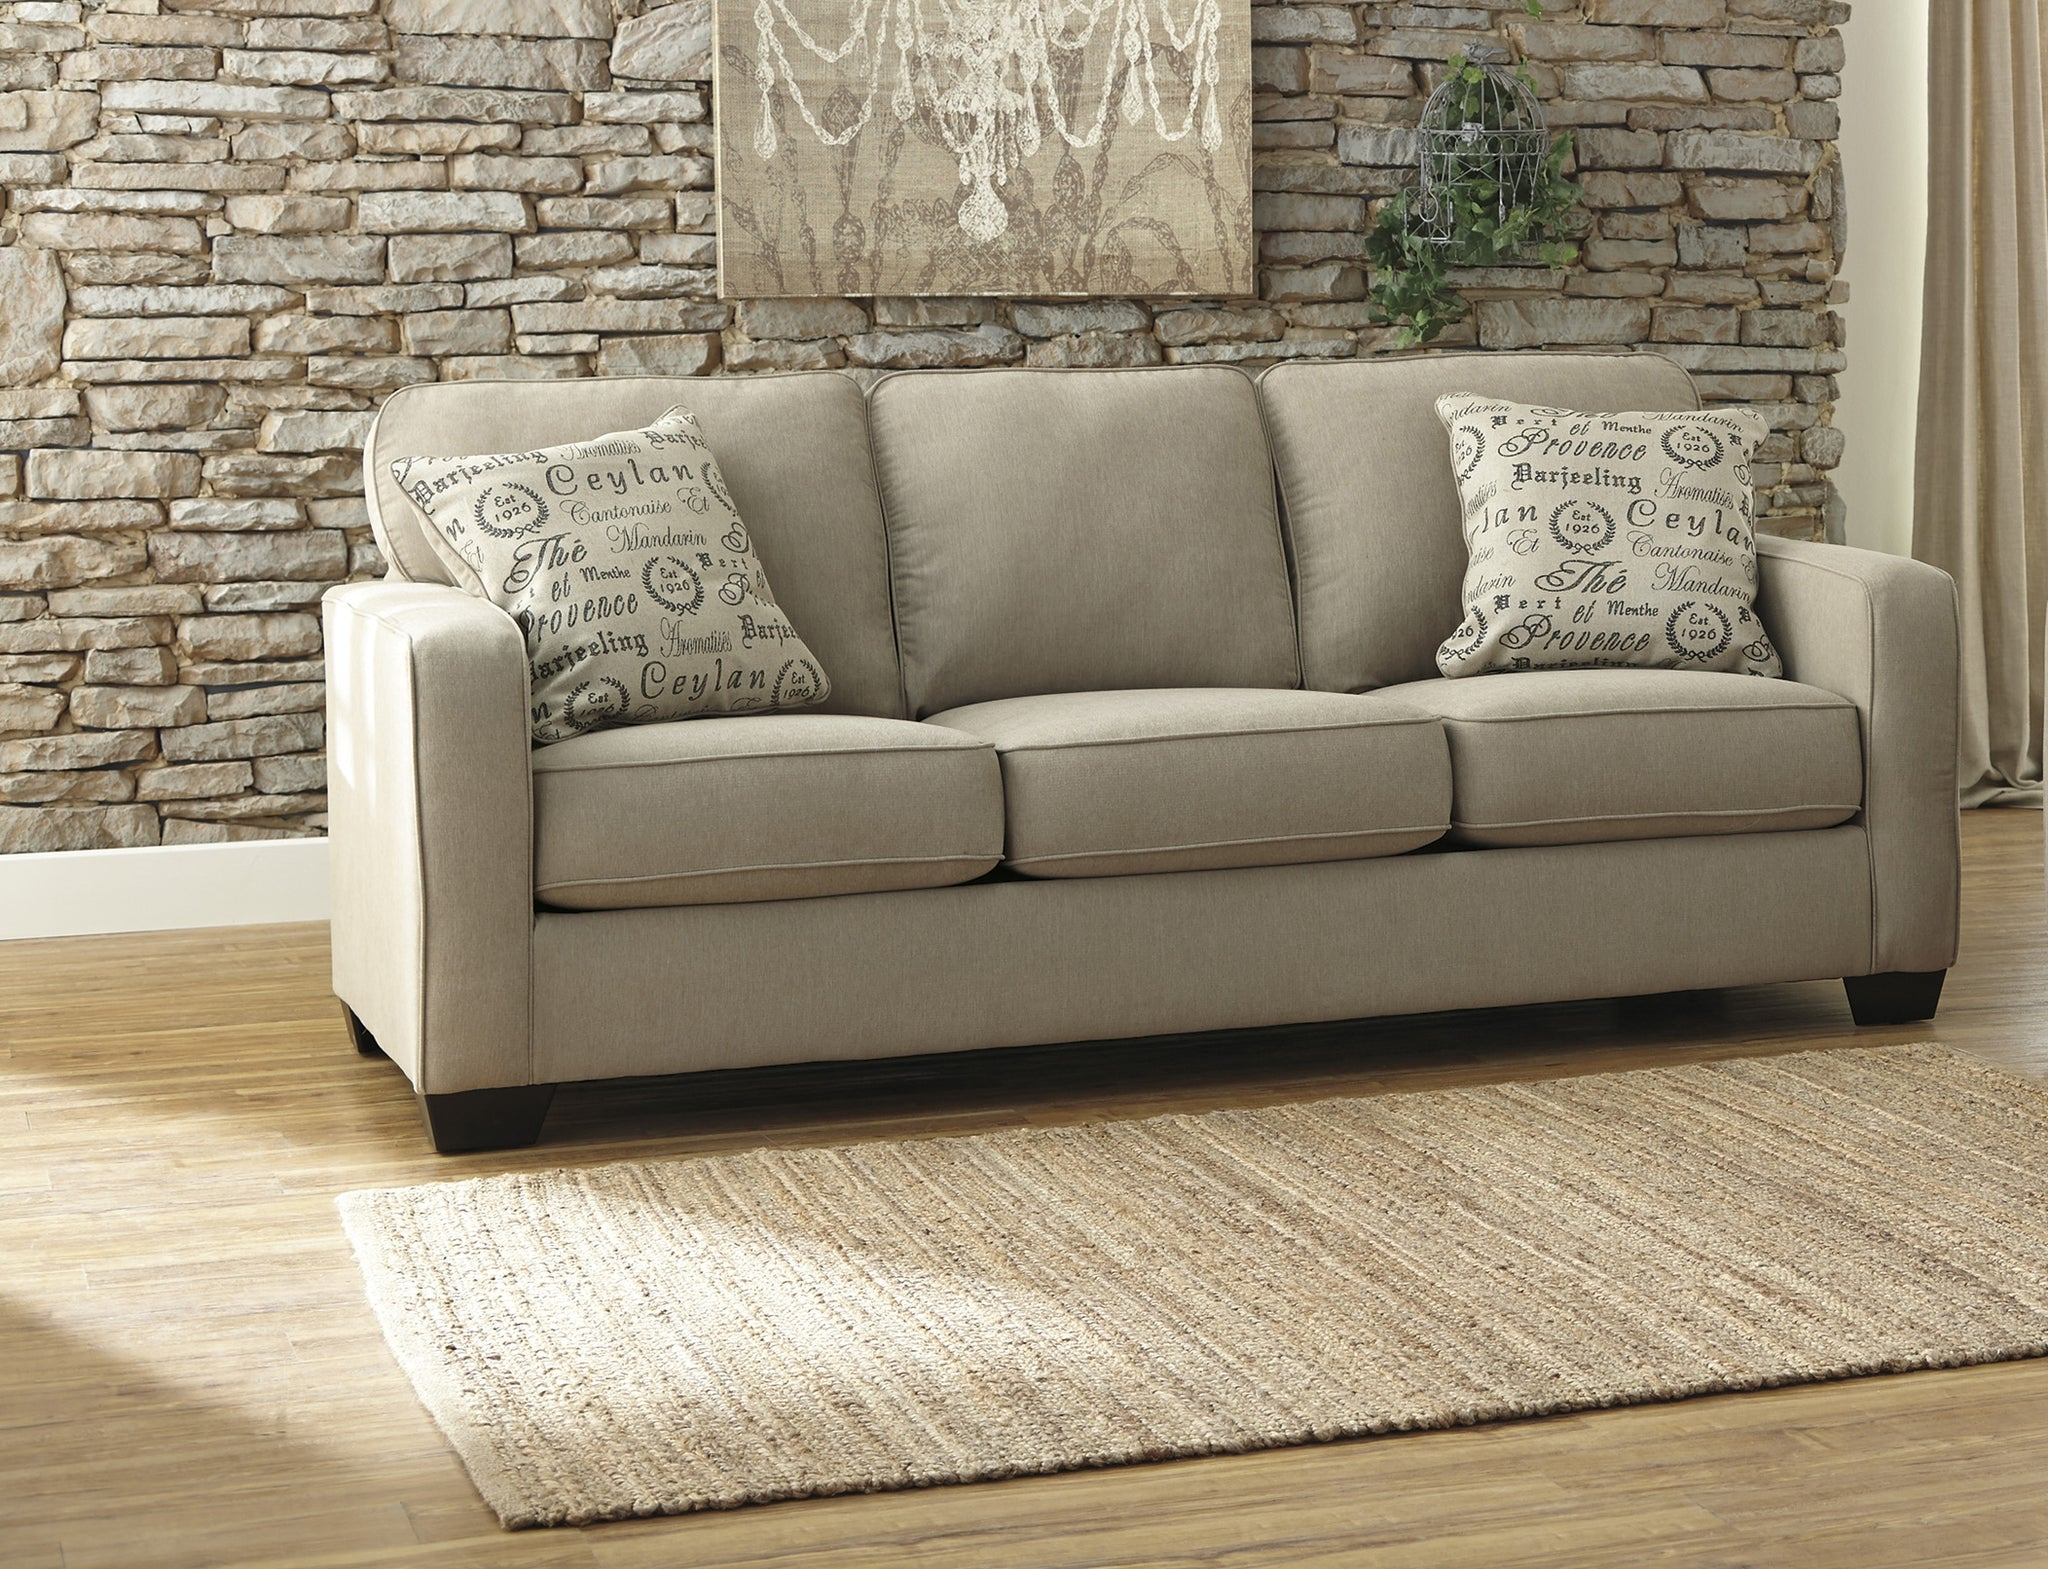 Terrific Alenya Quartz Queen Sofa Sleeper 1660039 Ashley Furniture Ncnpc Chair Design For Home Ncnpcorg